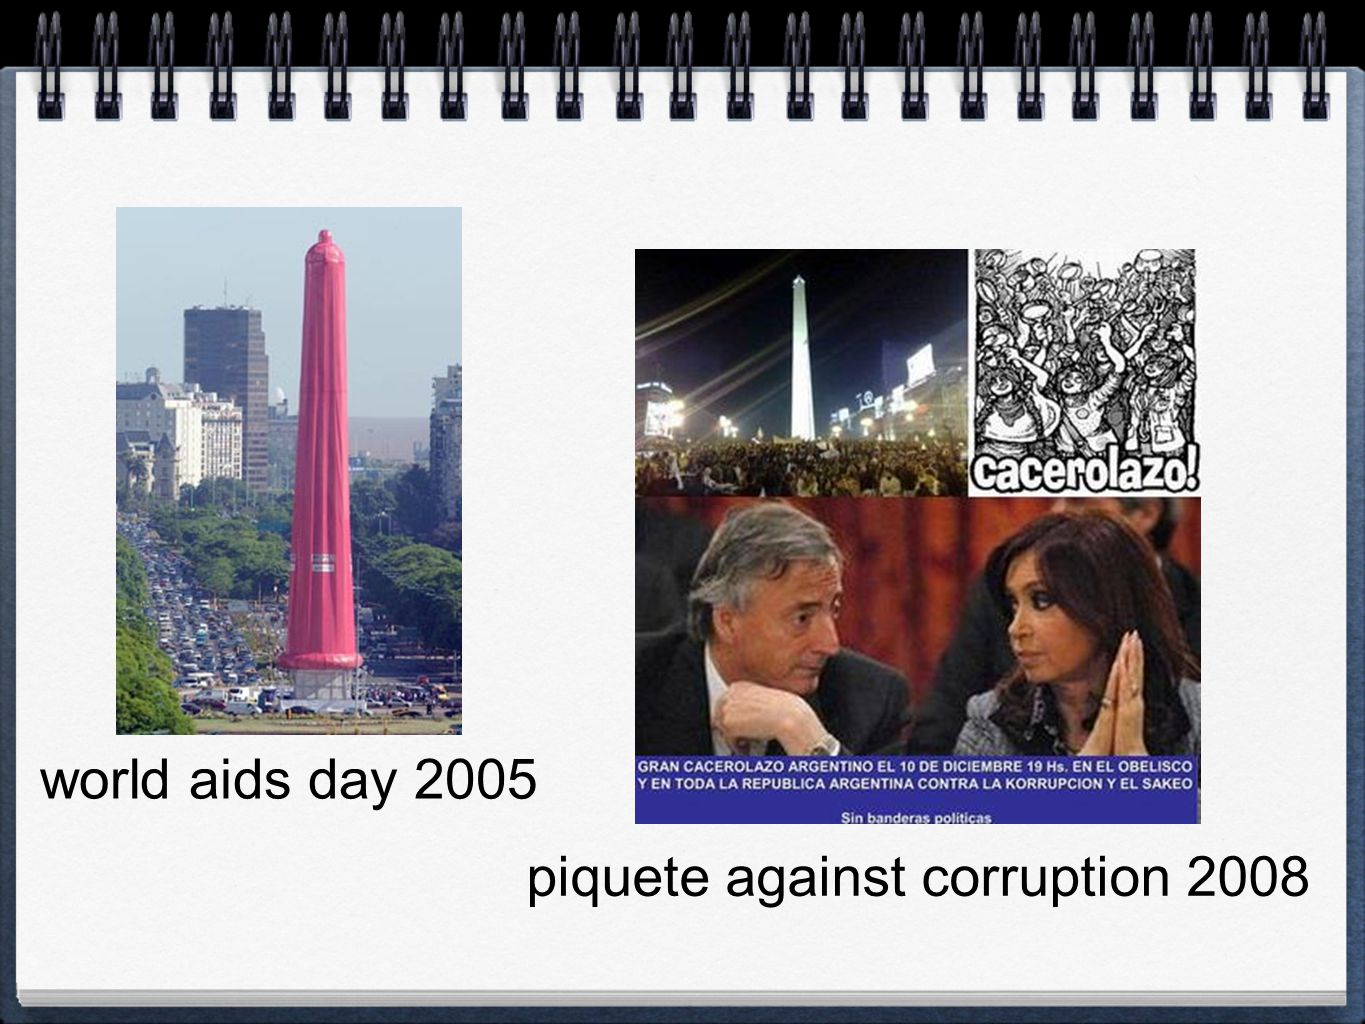 world aids day 2005 piquete against corruption 2008